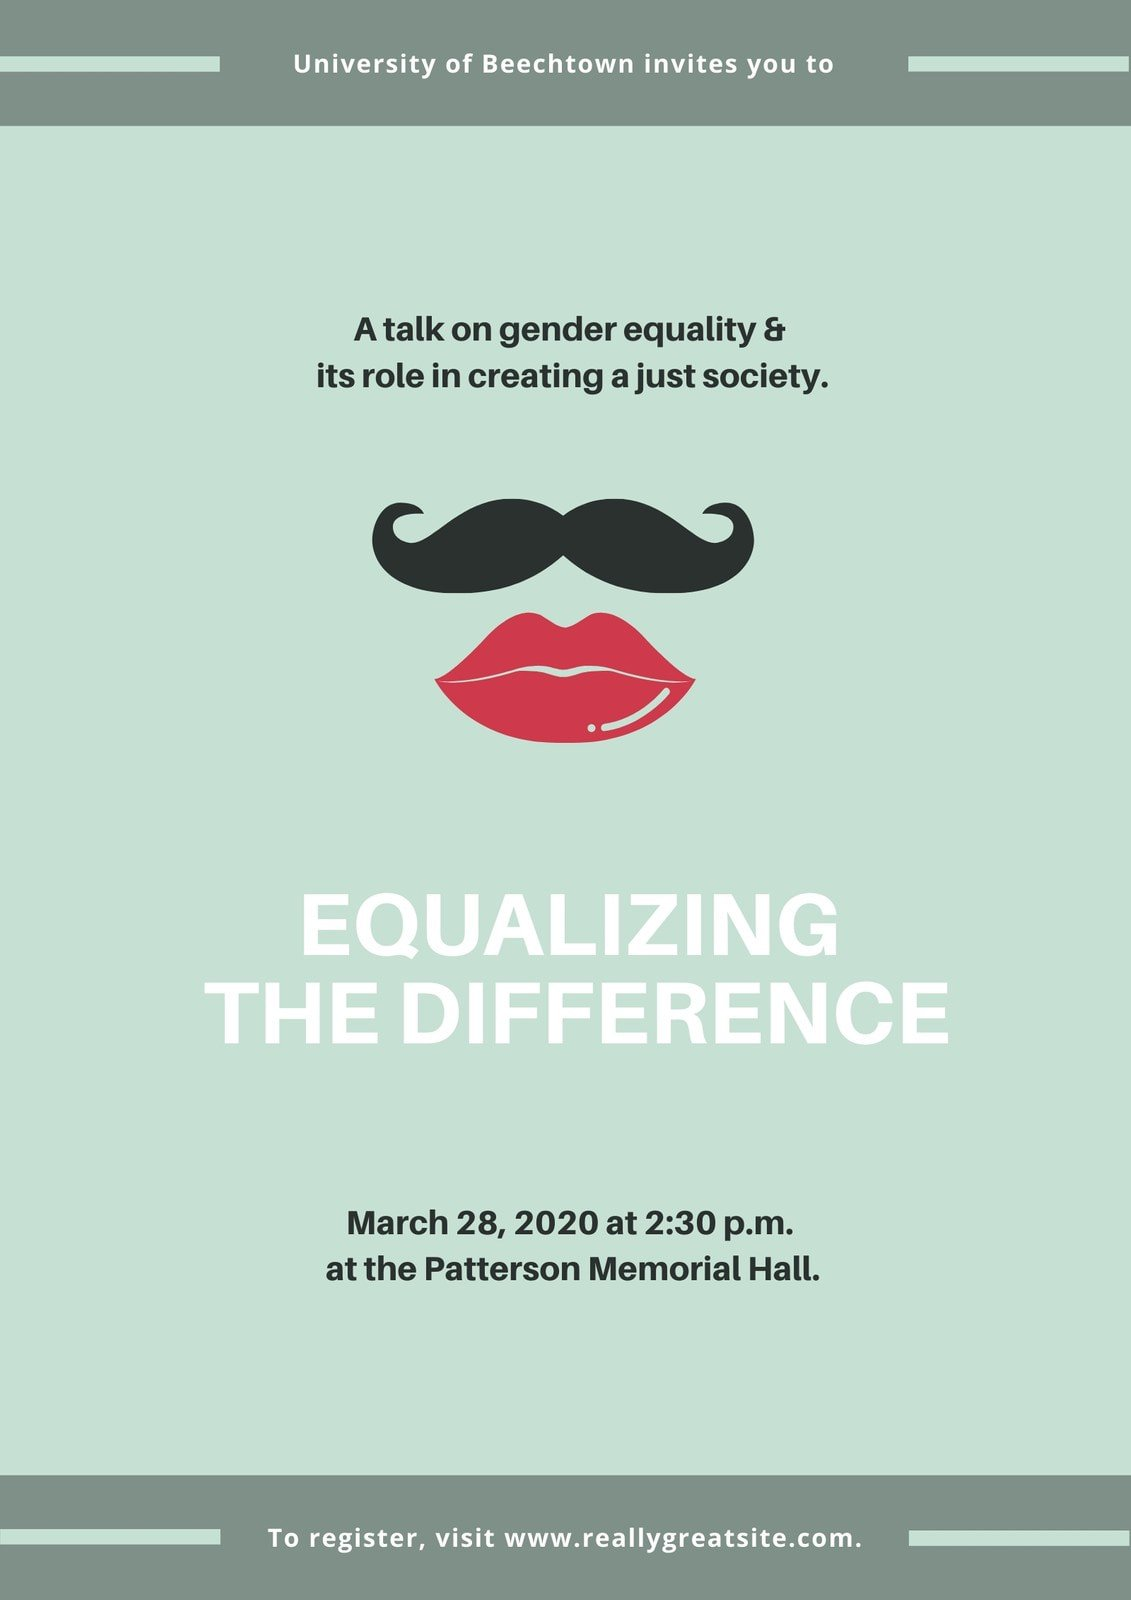 Green Mustache and Lips Gender Equality Poster